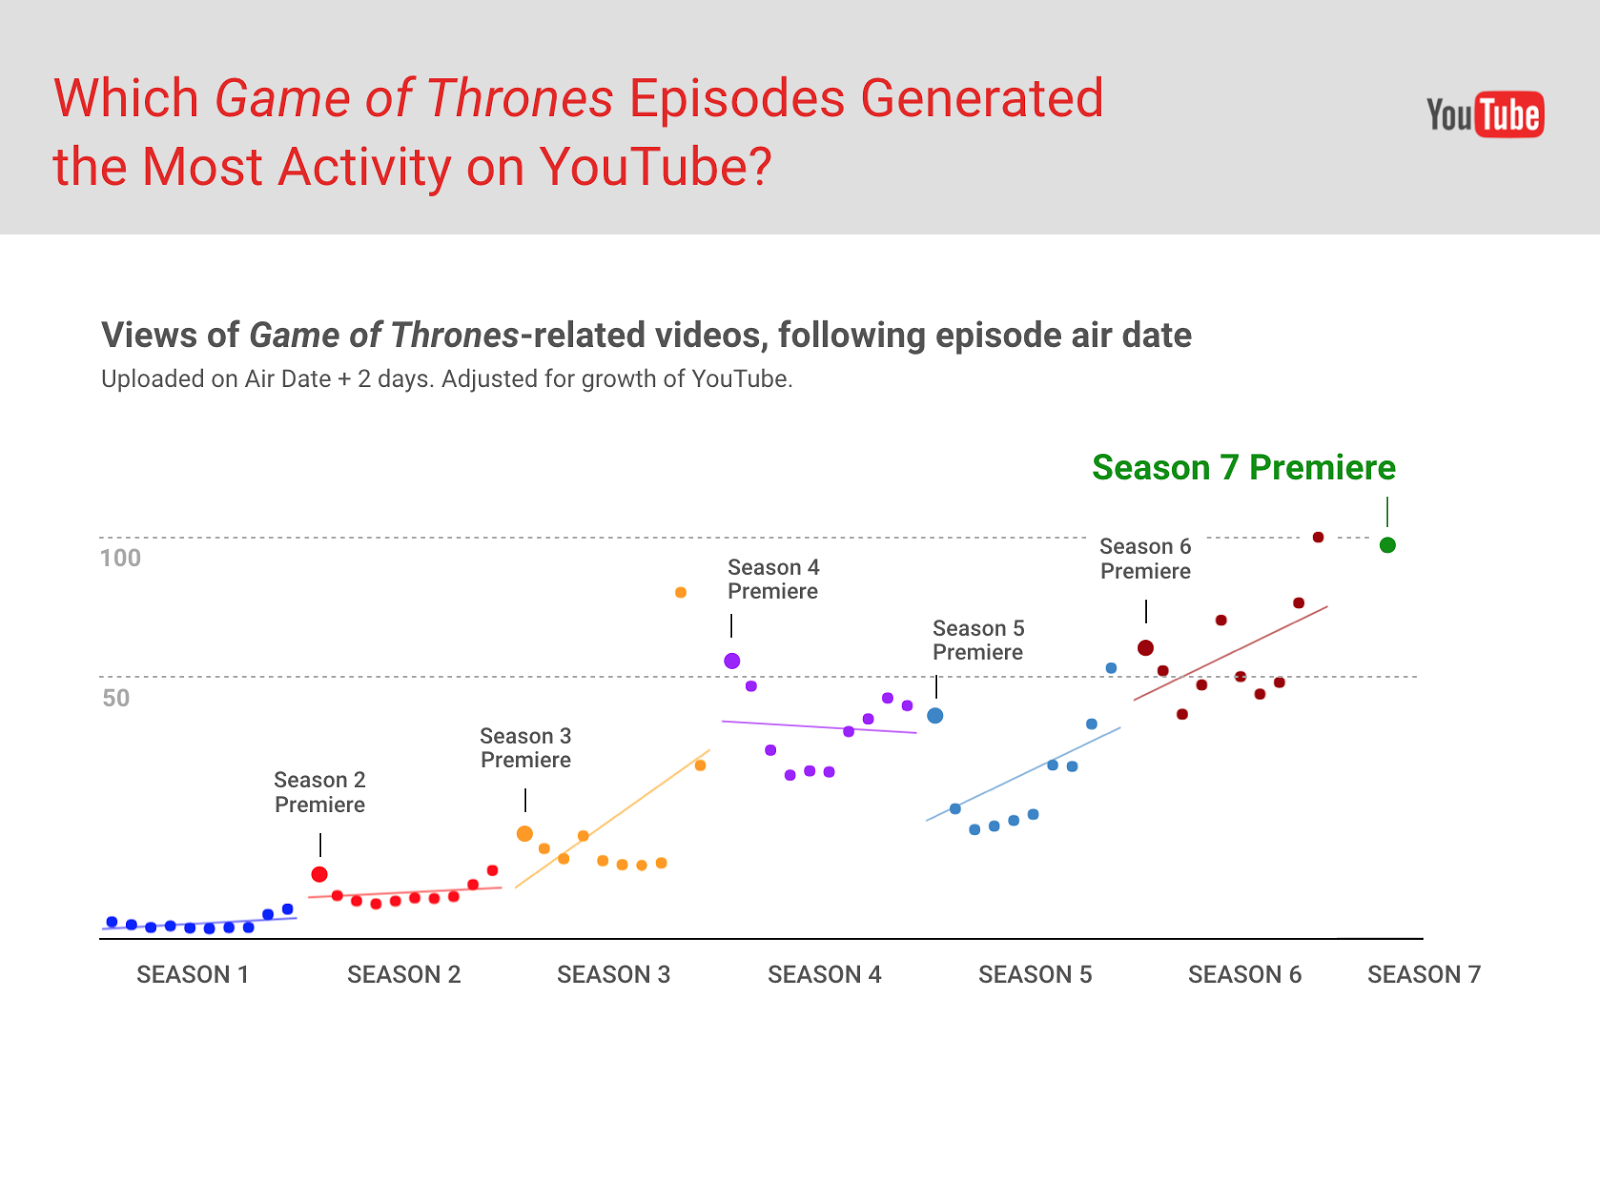 Game Of Thrones Continues To Level Up Fan Engagement On Youtube Whole Lotta Humbucker Wiring Diagram The Season 7 Premiere Generated Most Activity Compared Any Other Seasons 16